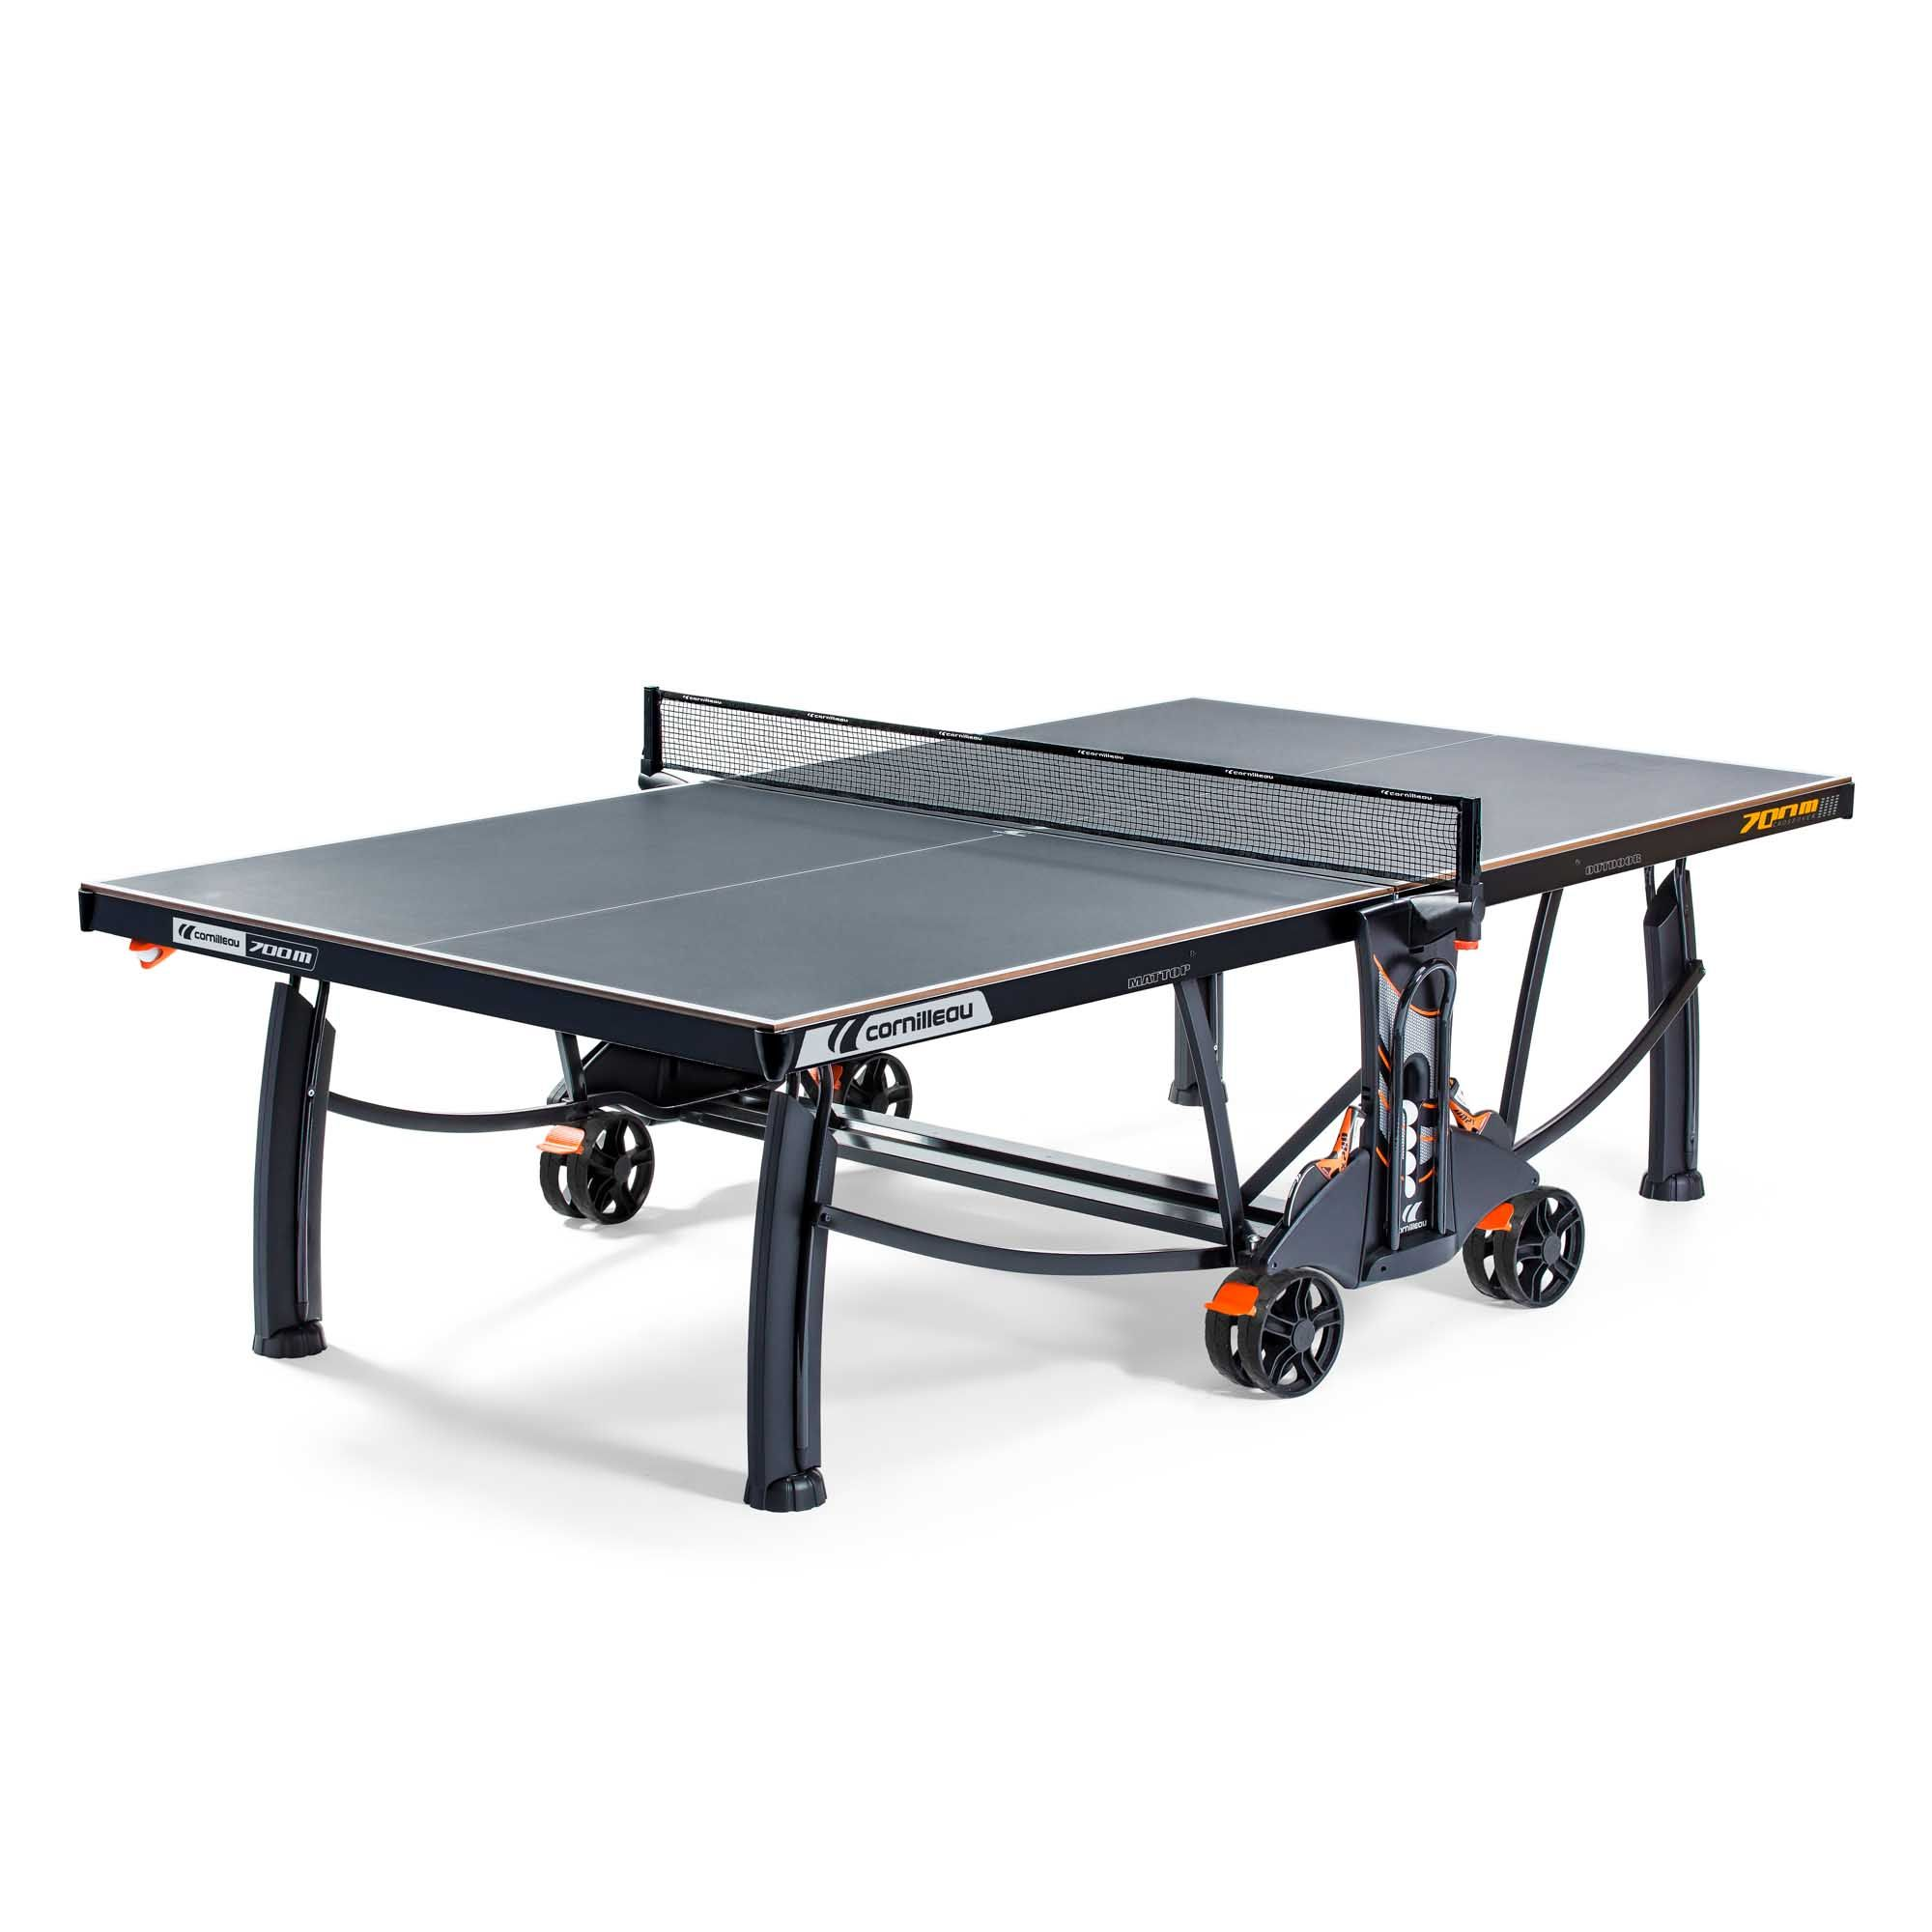 Cornilleau performance 700m crossover outdoor table tennis table - Weatherproof table tennis table ...